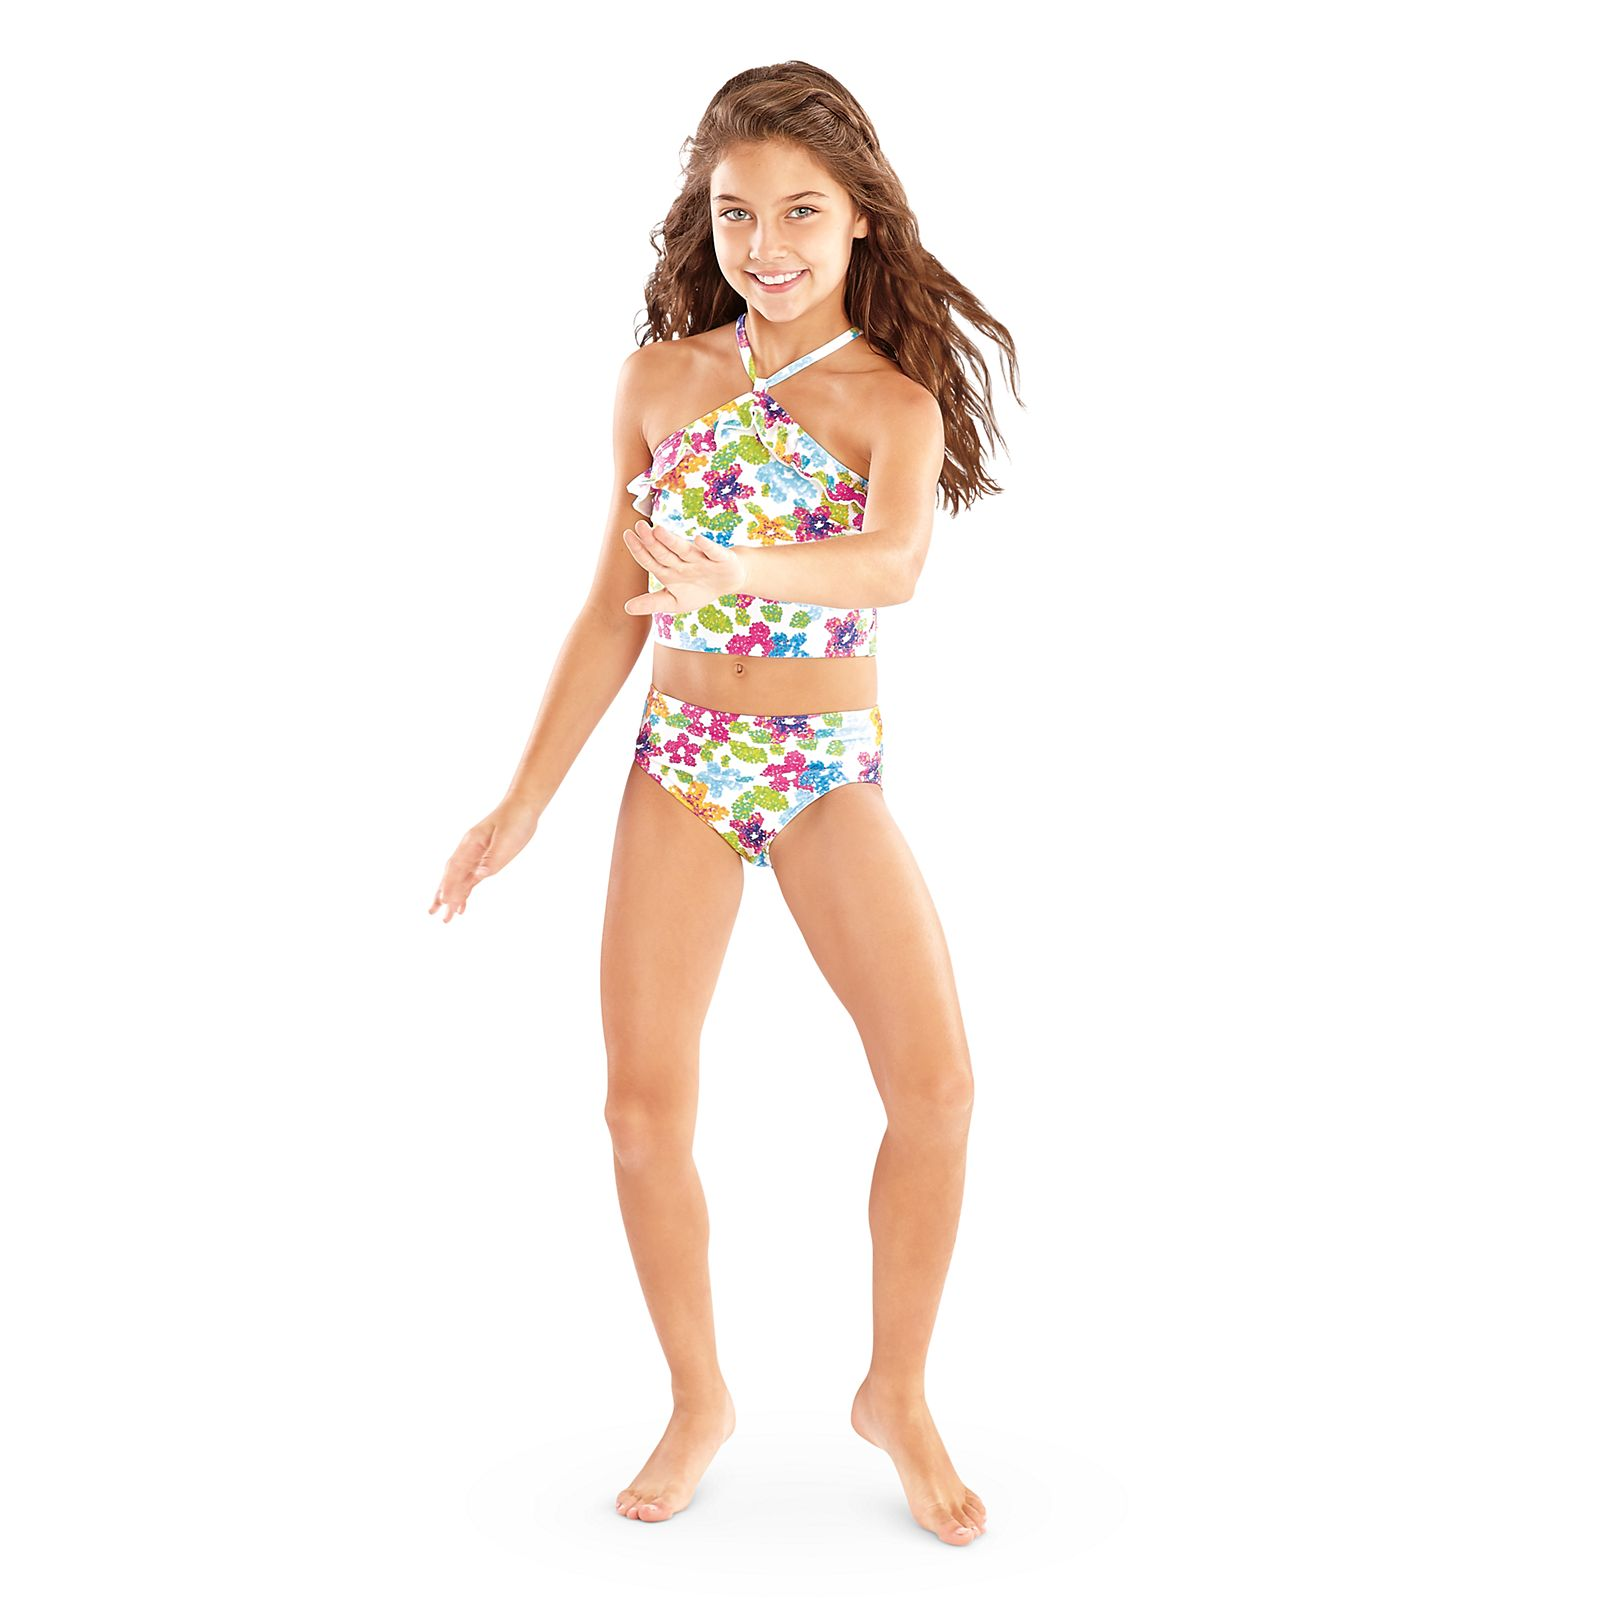 Floral Swimsuit For Girls Truly Me American Girl